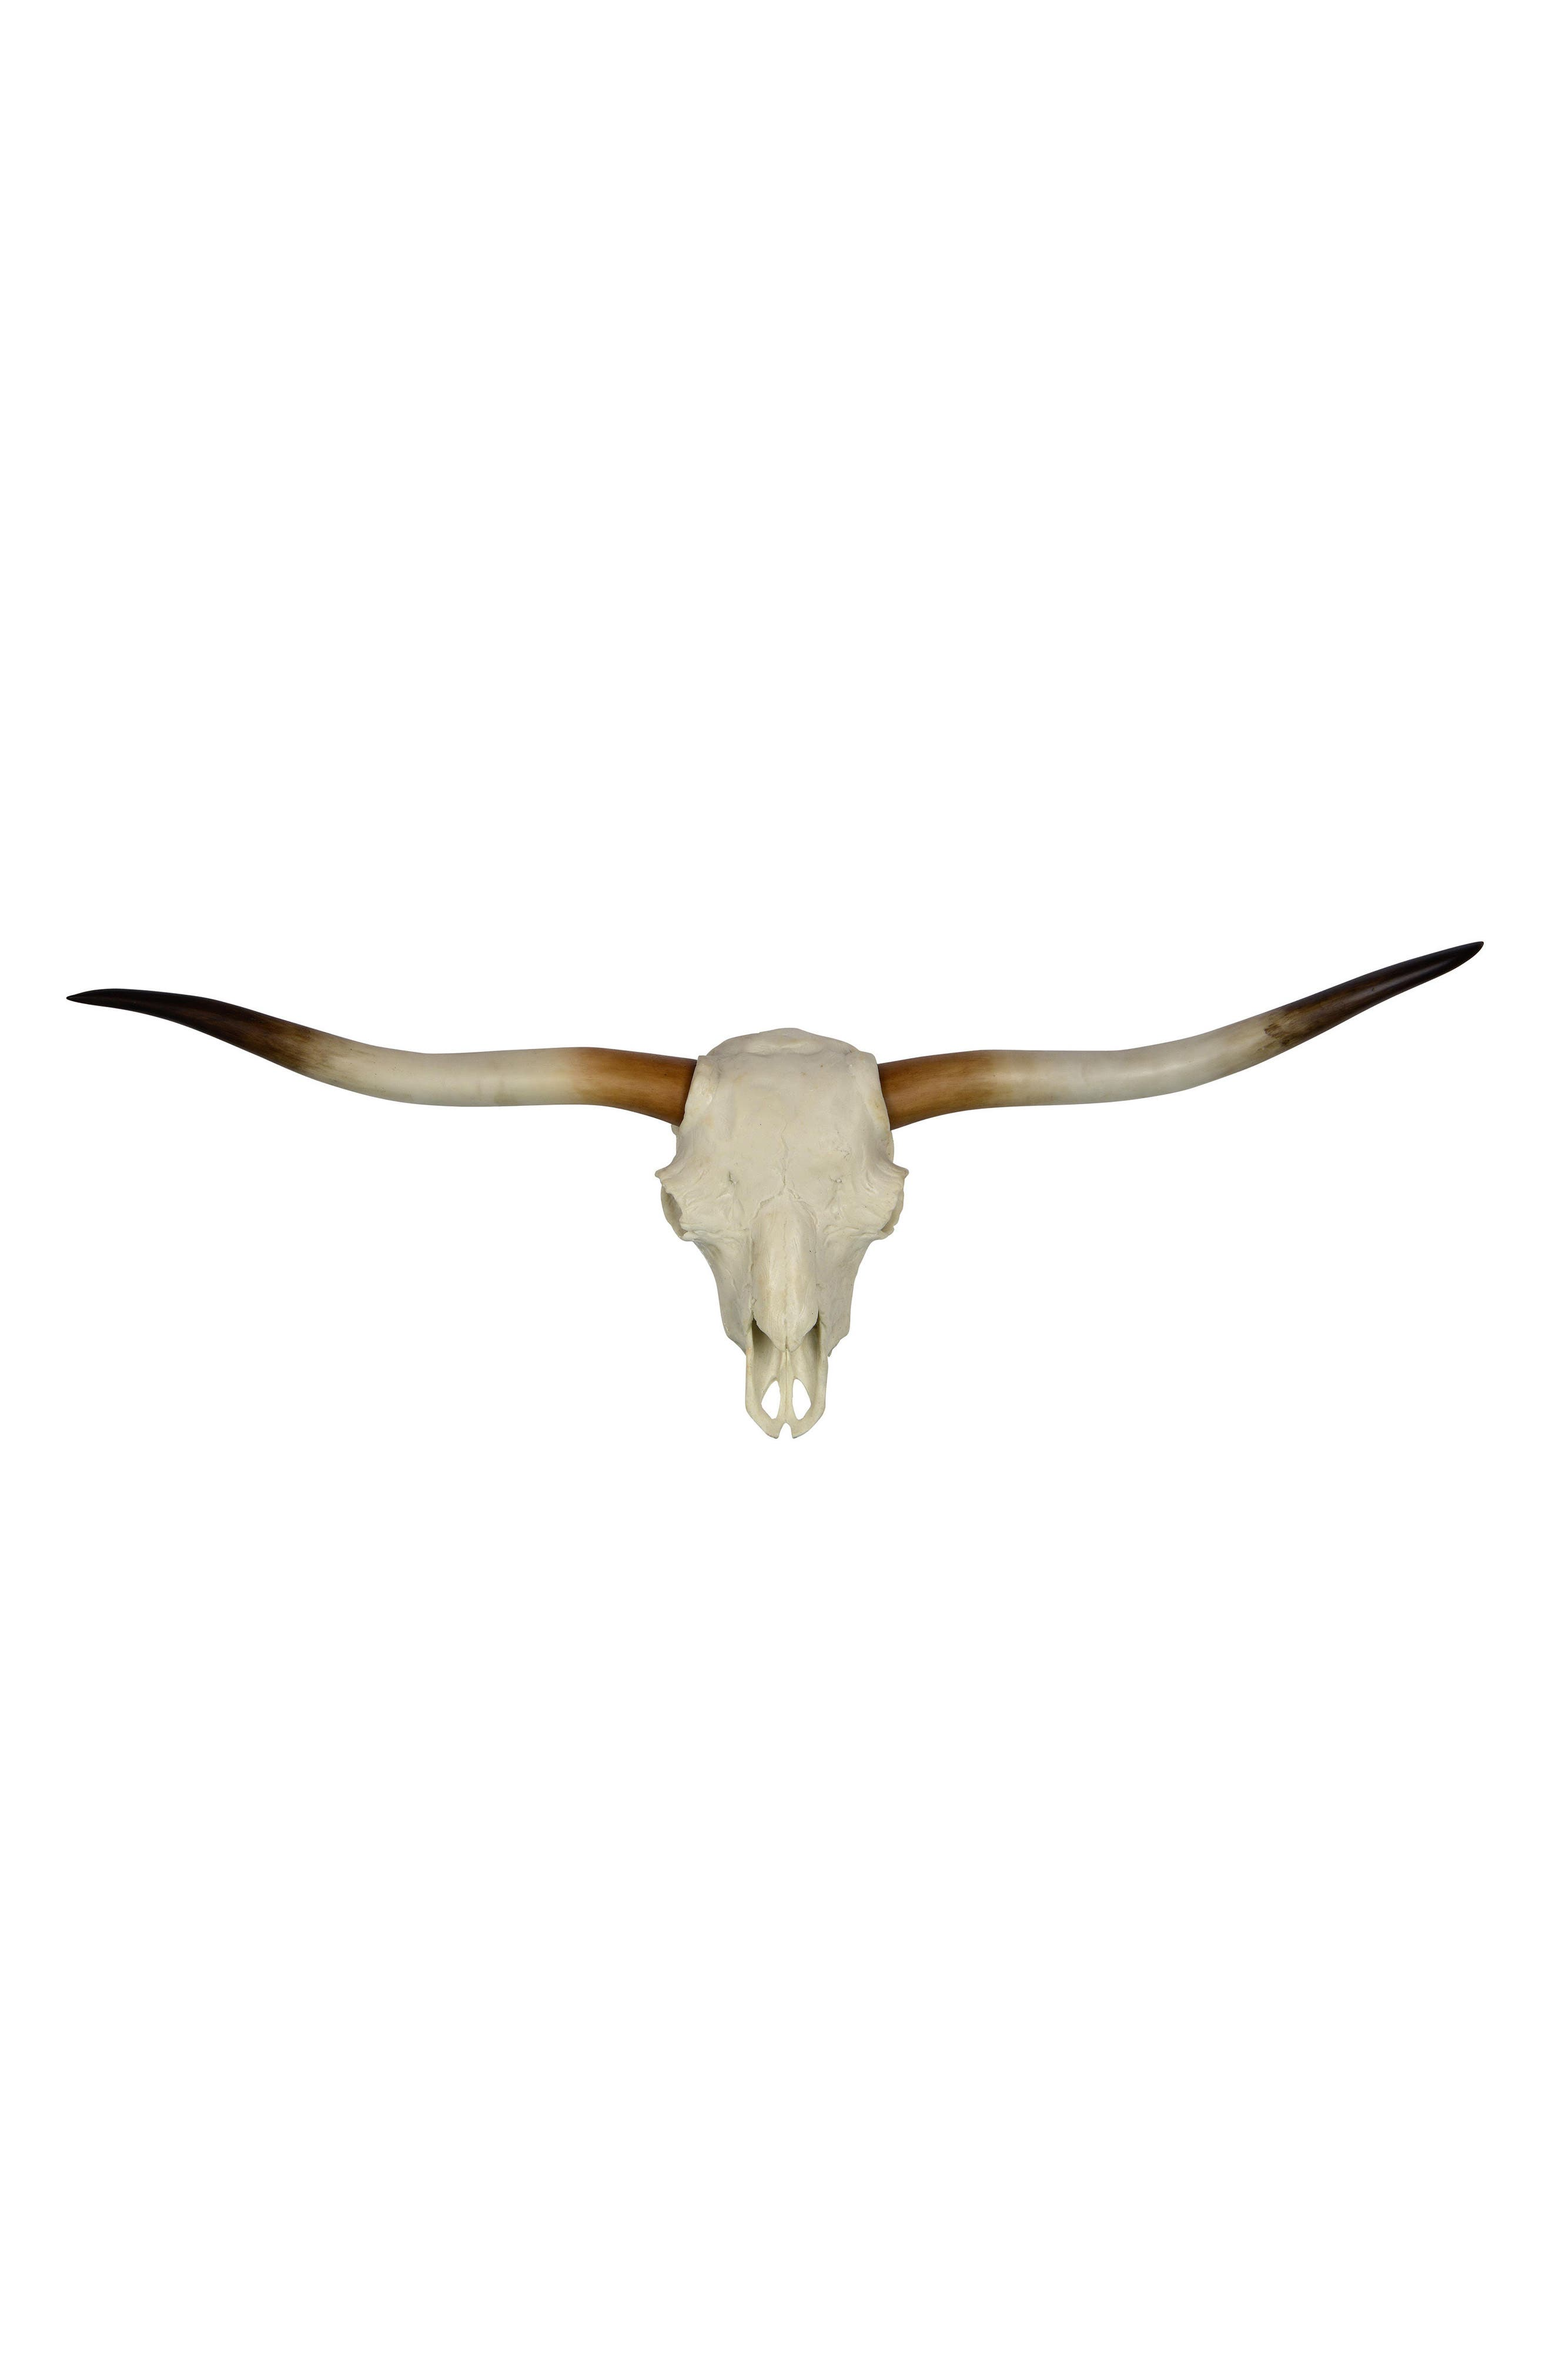 Resin Longhorn Skull Wall Ornament,                             Main thumbnail 1, color,                             100